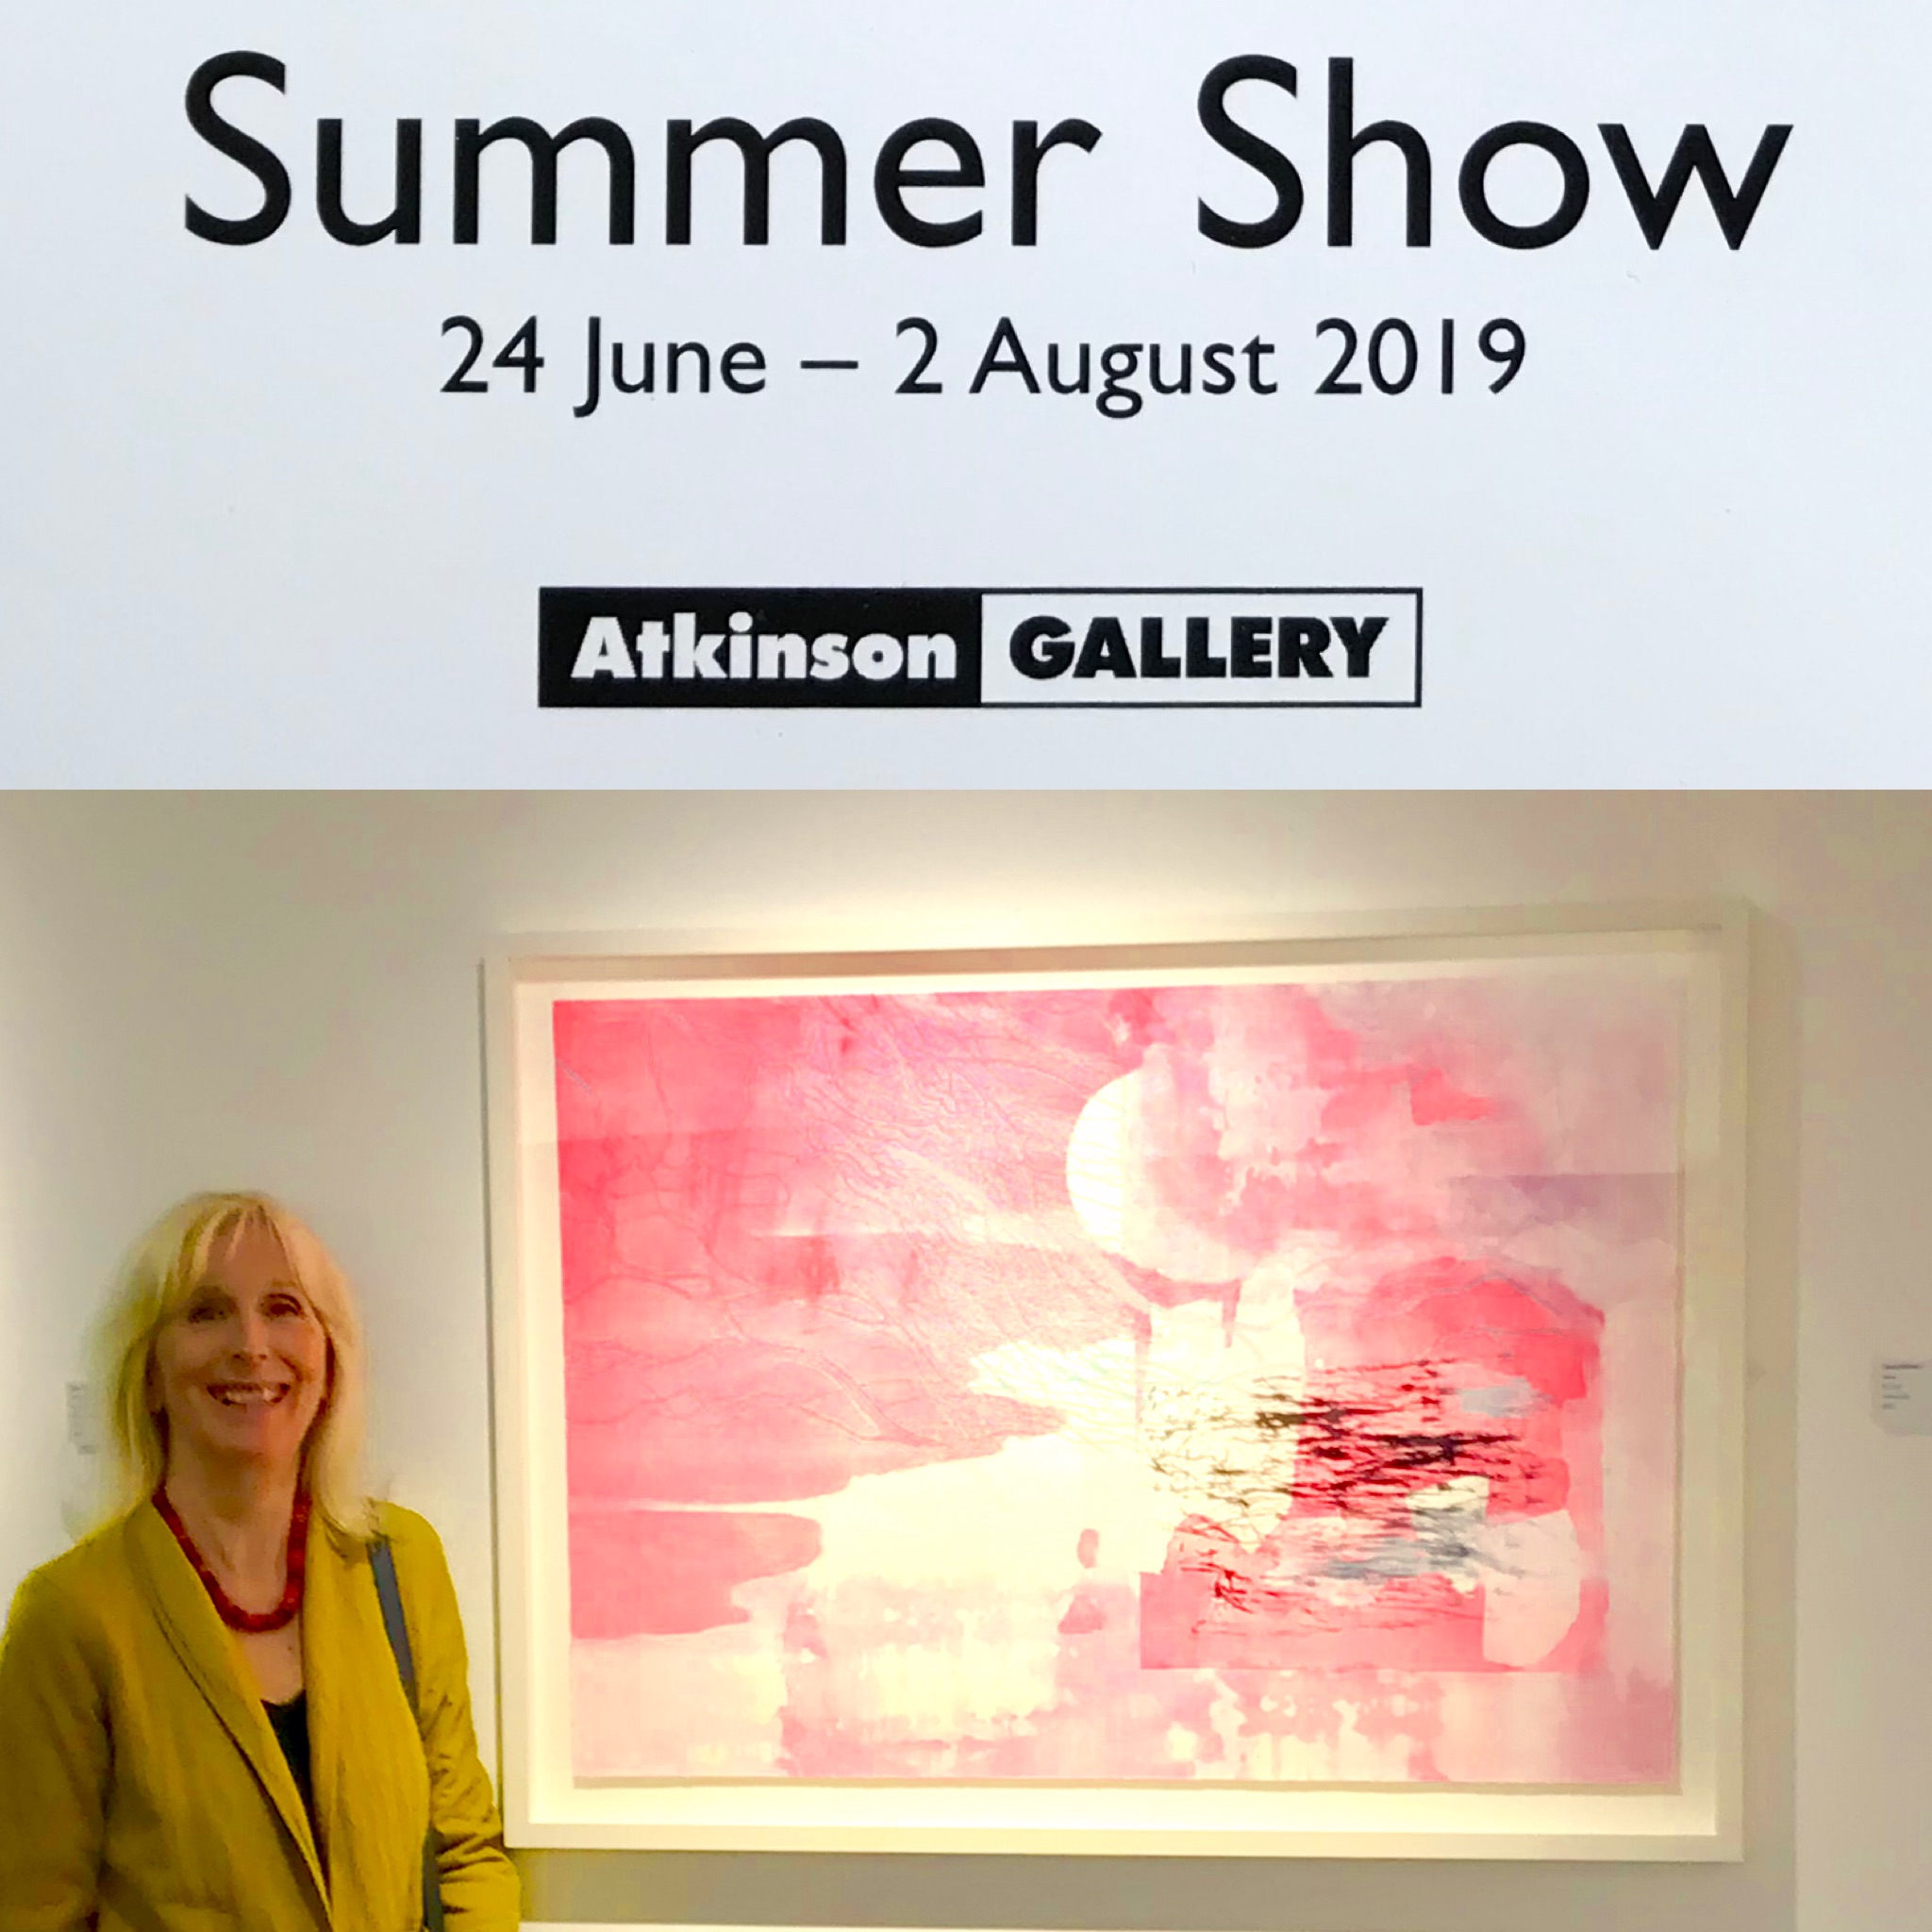 My painting 'Flow' showing at Atkinson Gallery. Delighted it has been bought for their collection.